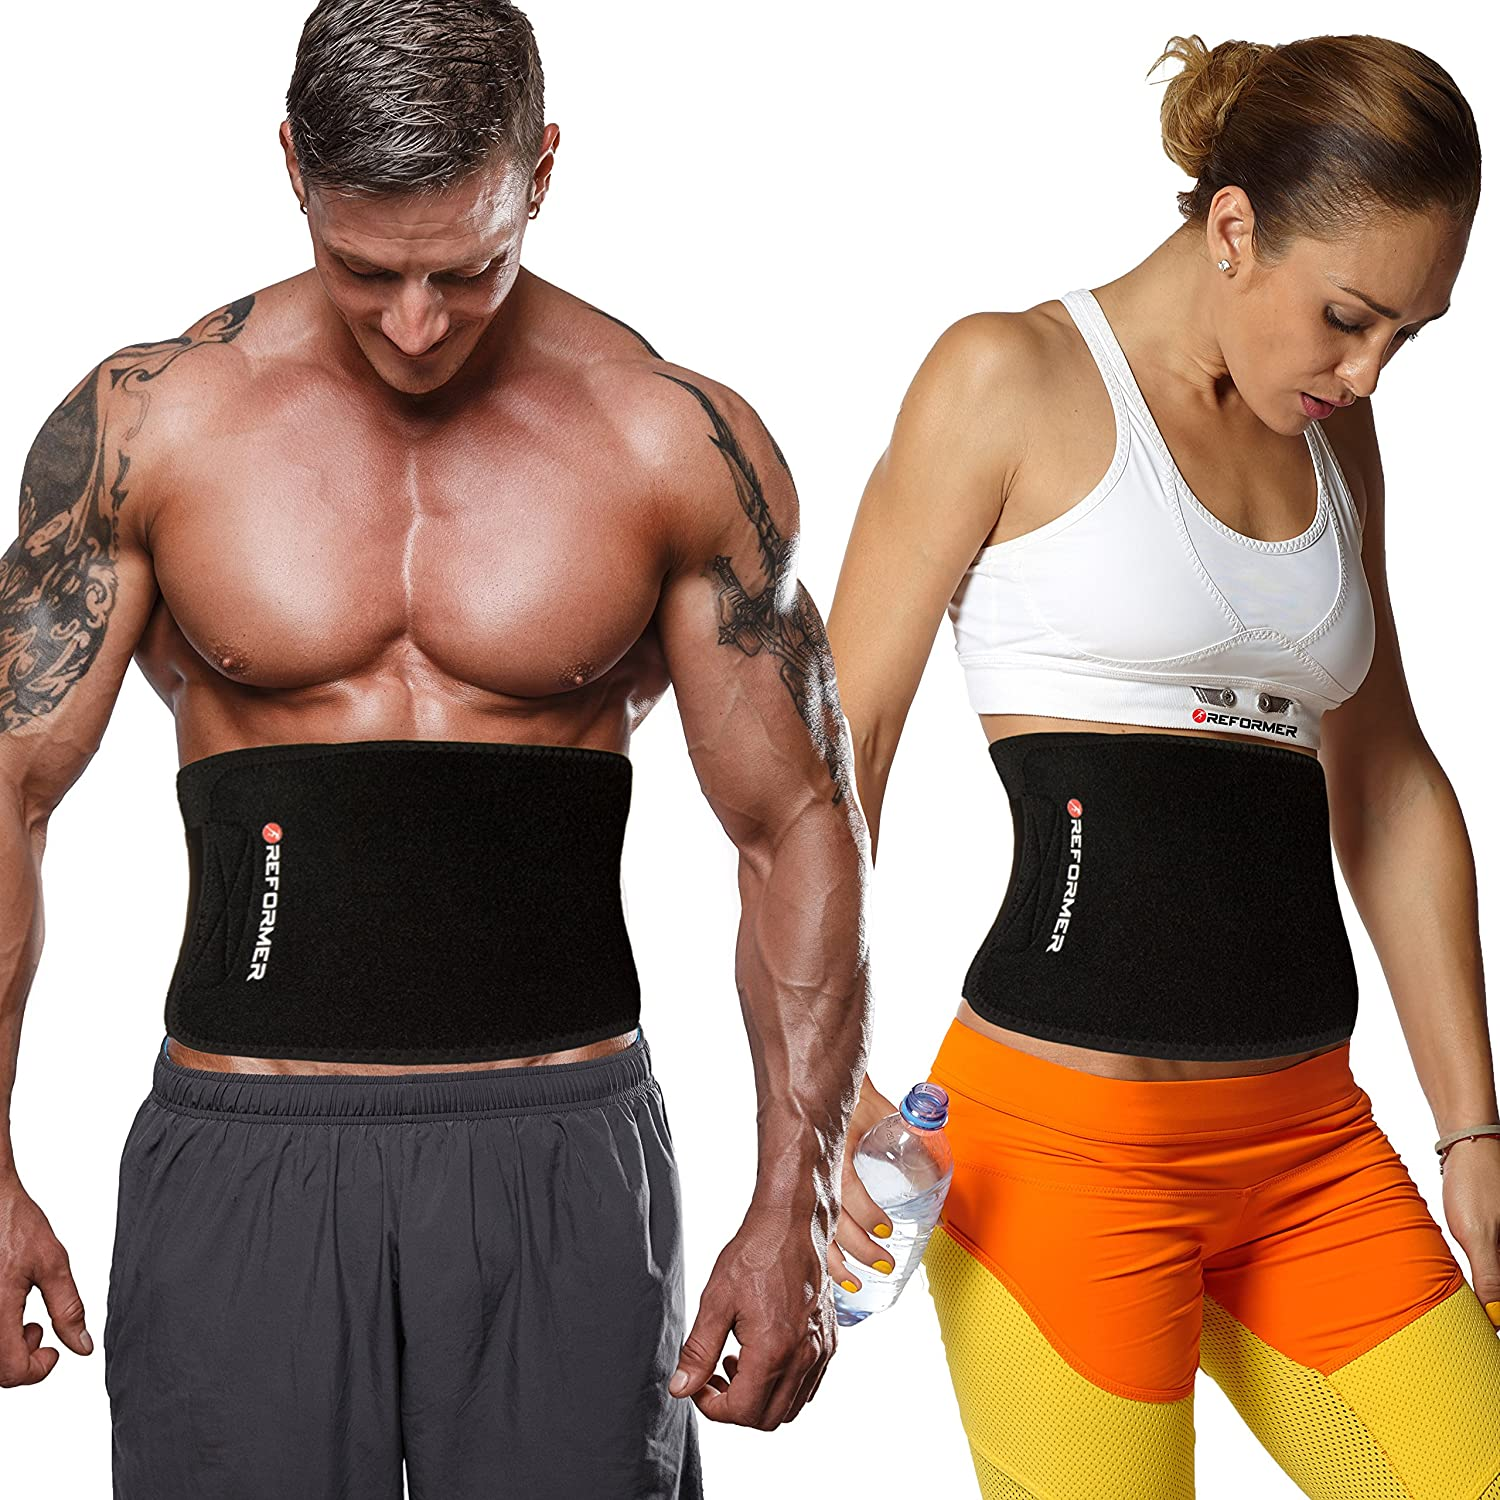 277796614e Reformer Athletics Waist Trimmer Ab Belt Trainer for Faster Weight Loss.  Includes Free Fully Adjustable Impact Resistant